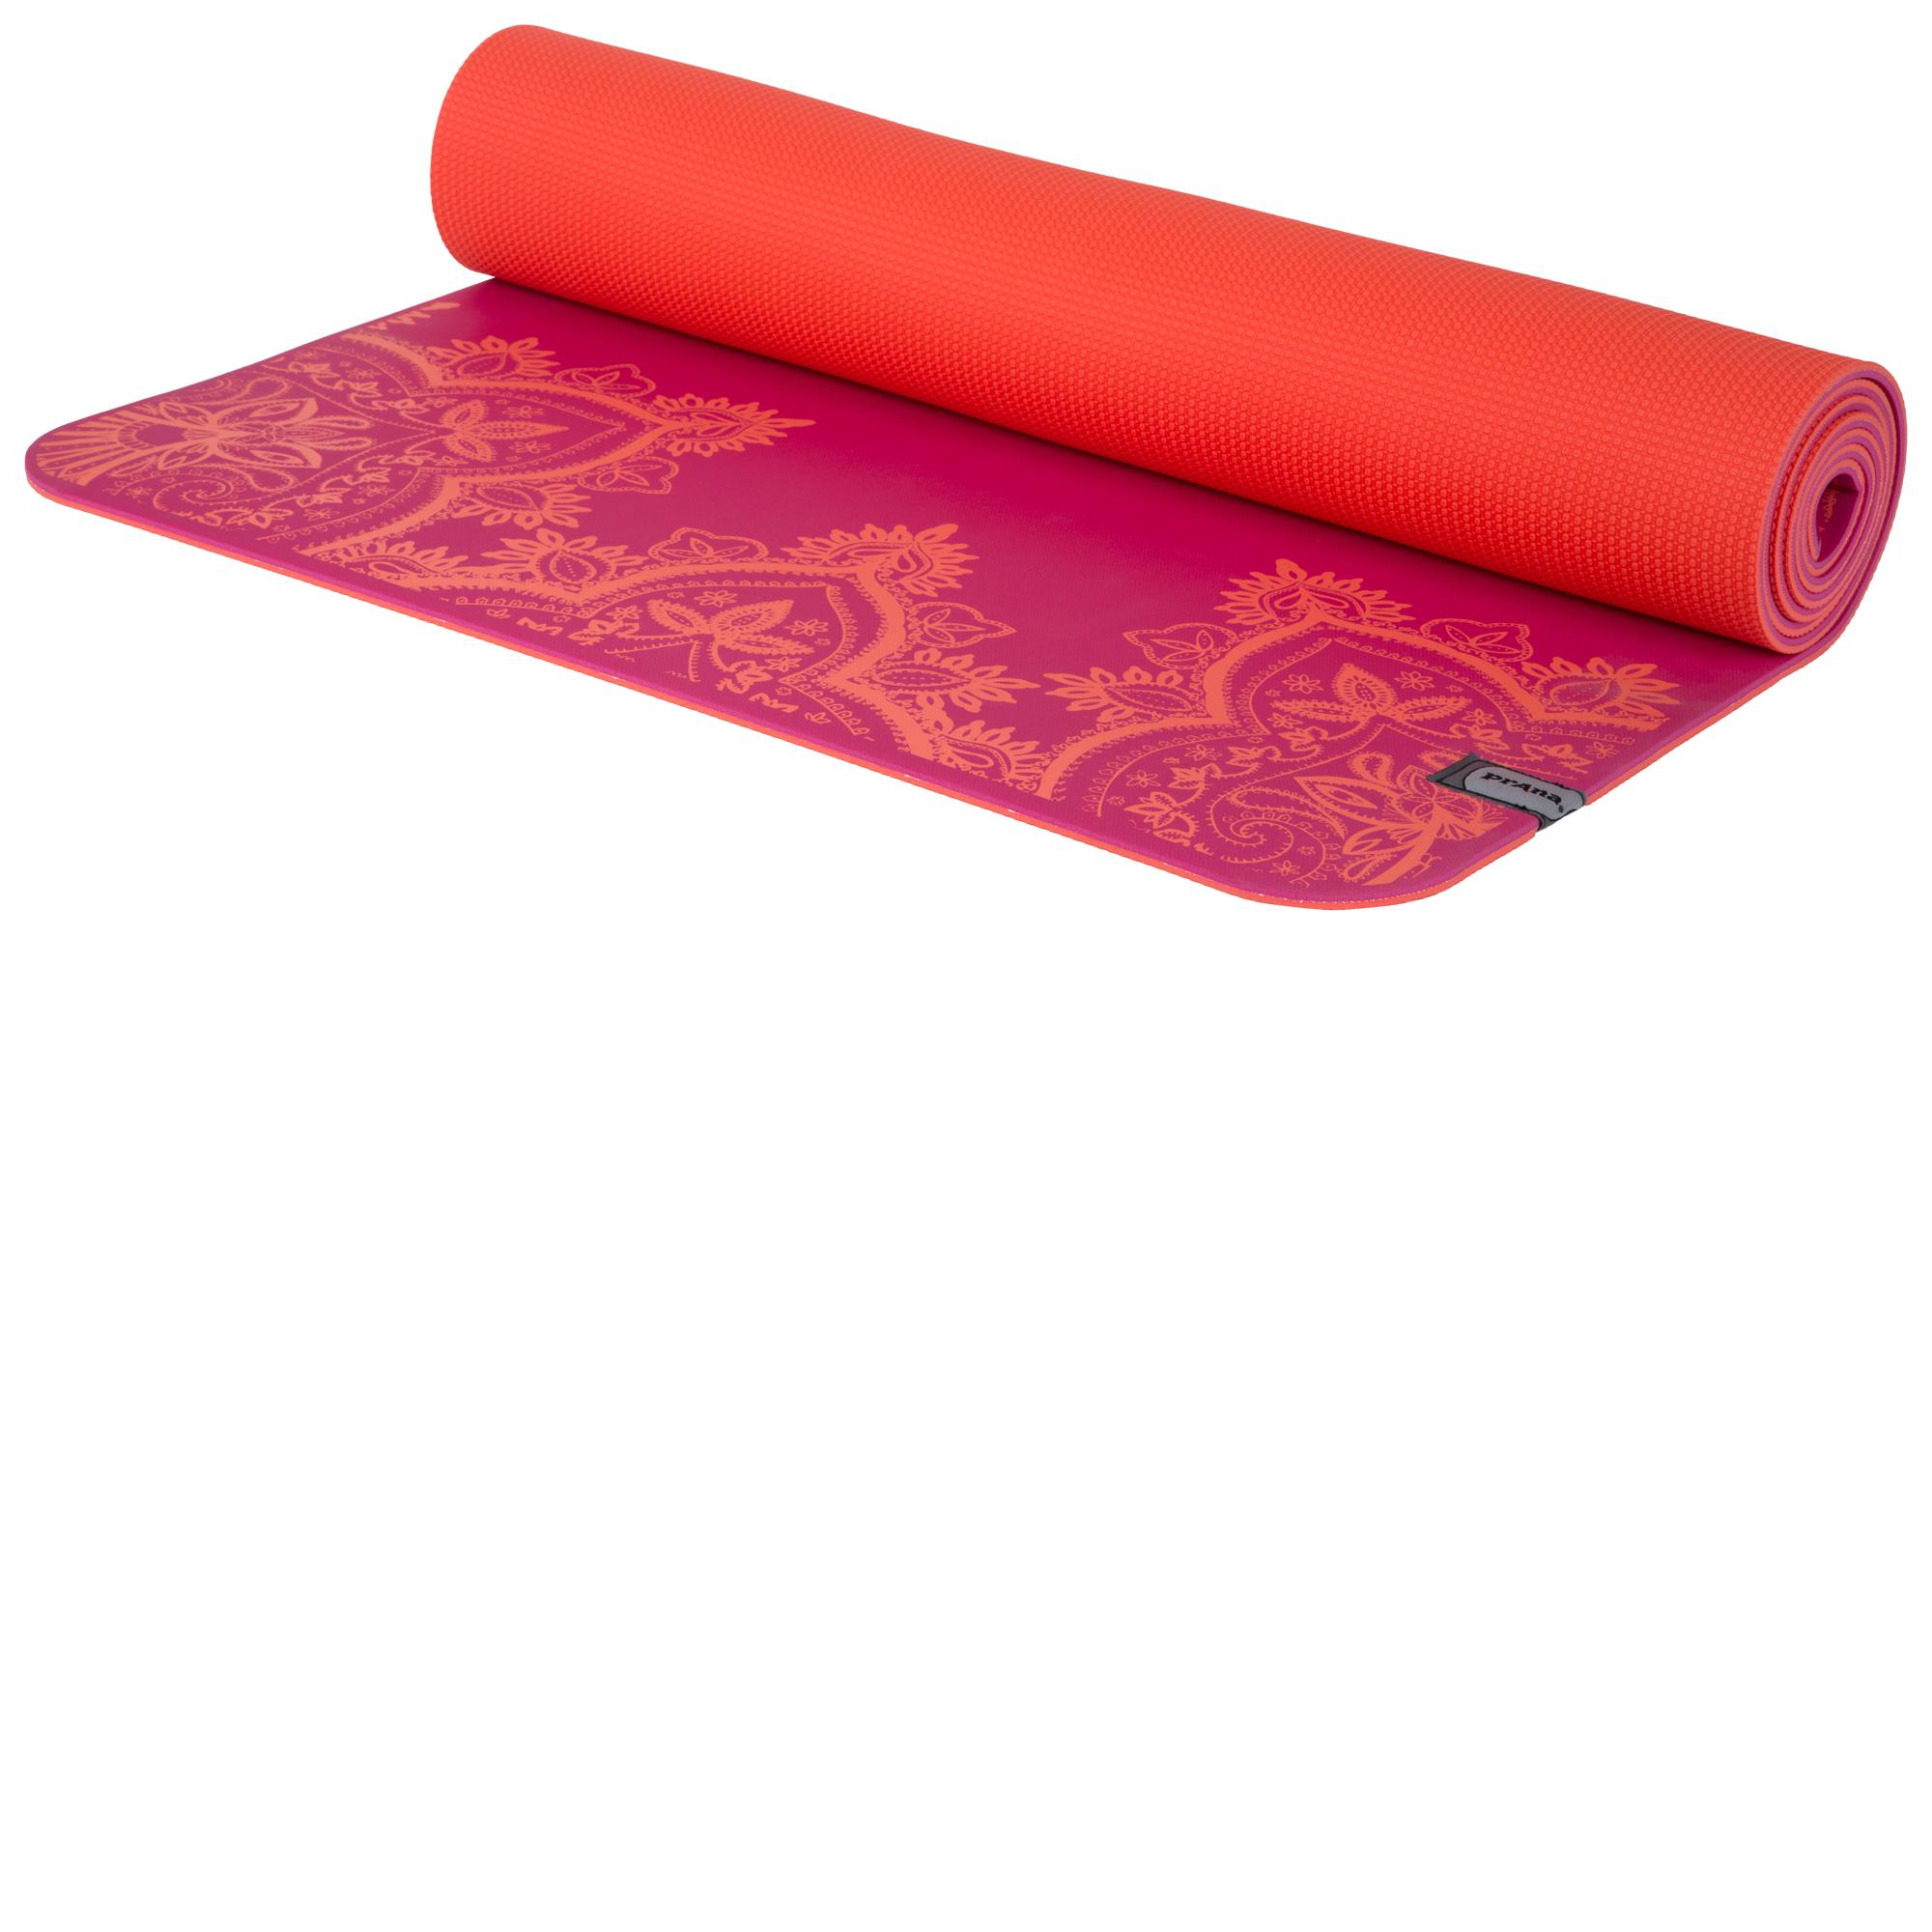 Amazon.com : prAna E.C.O. Yoga Mat, Black, One Size